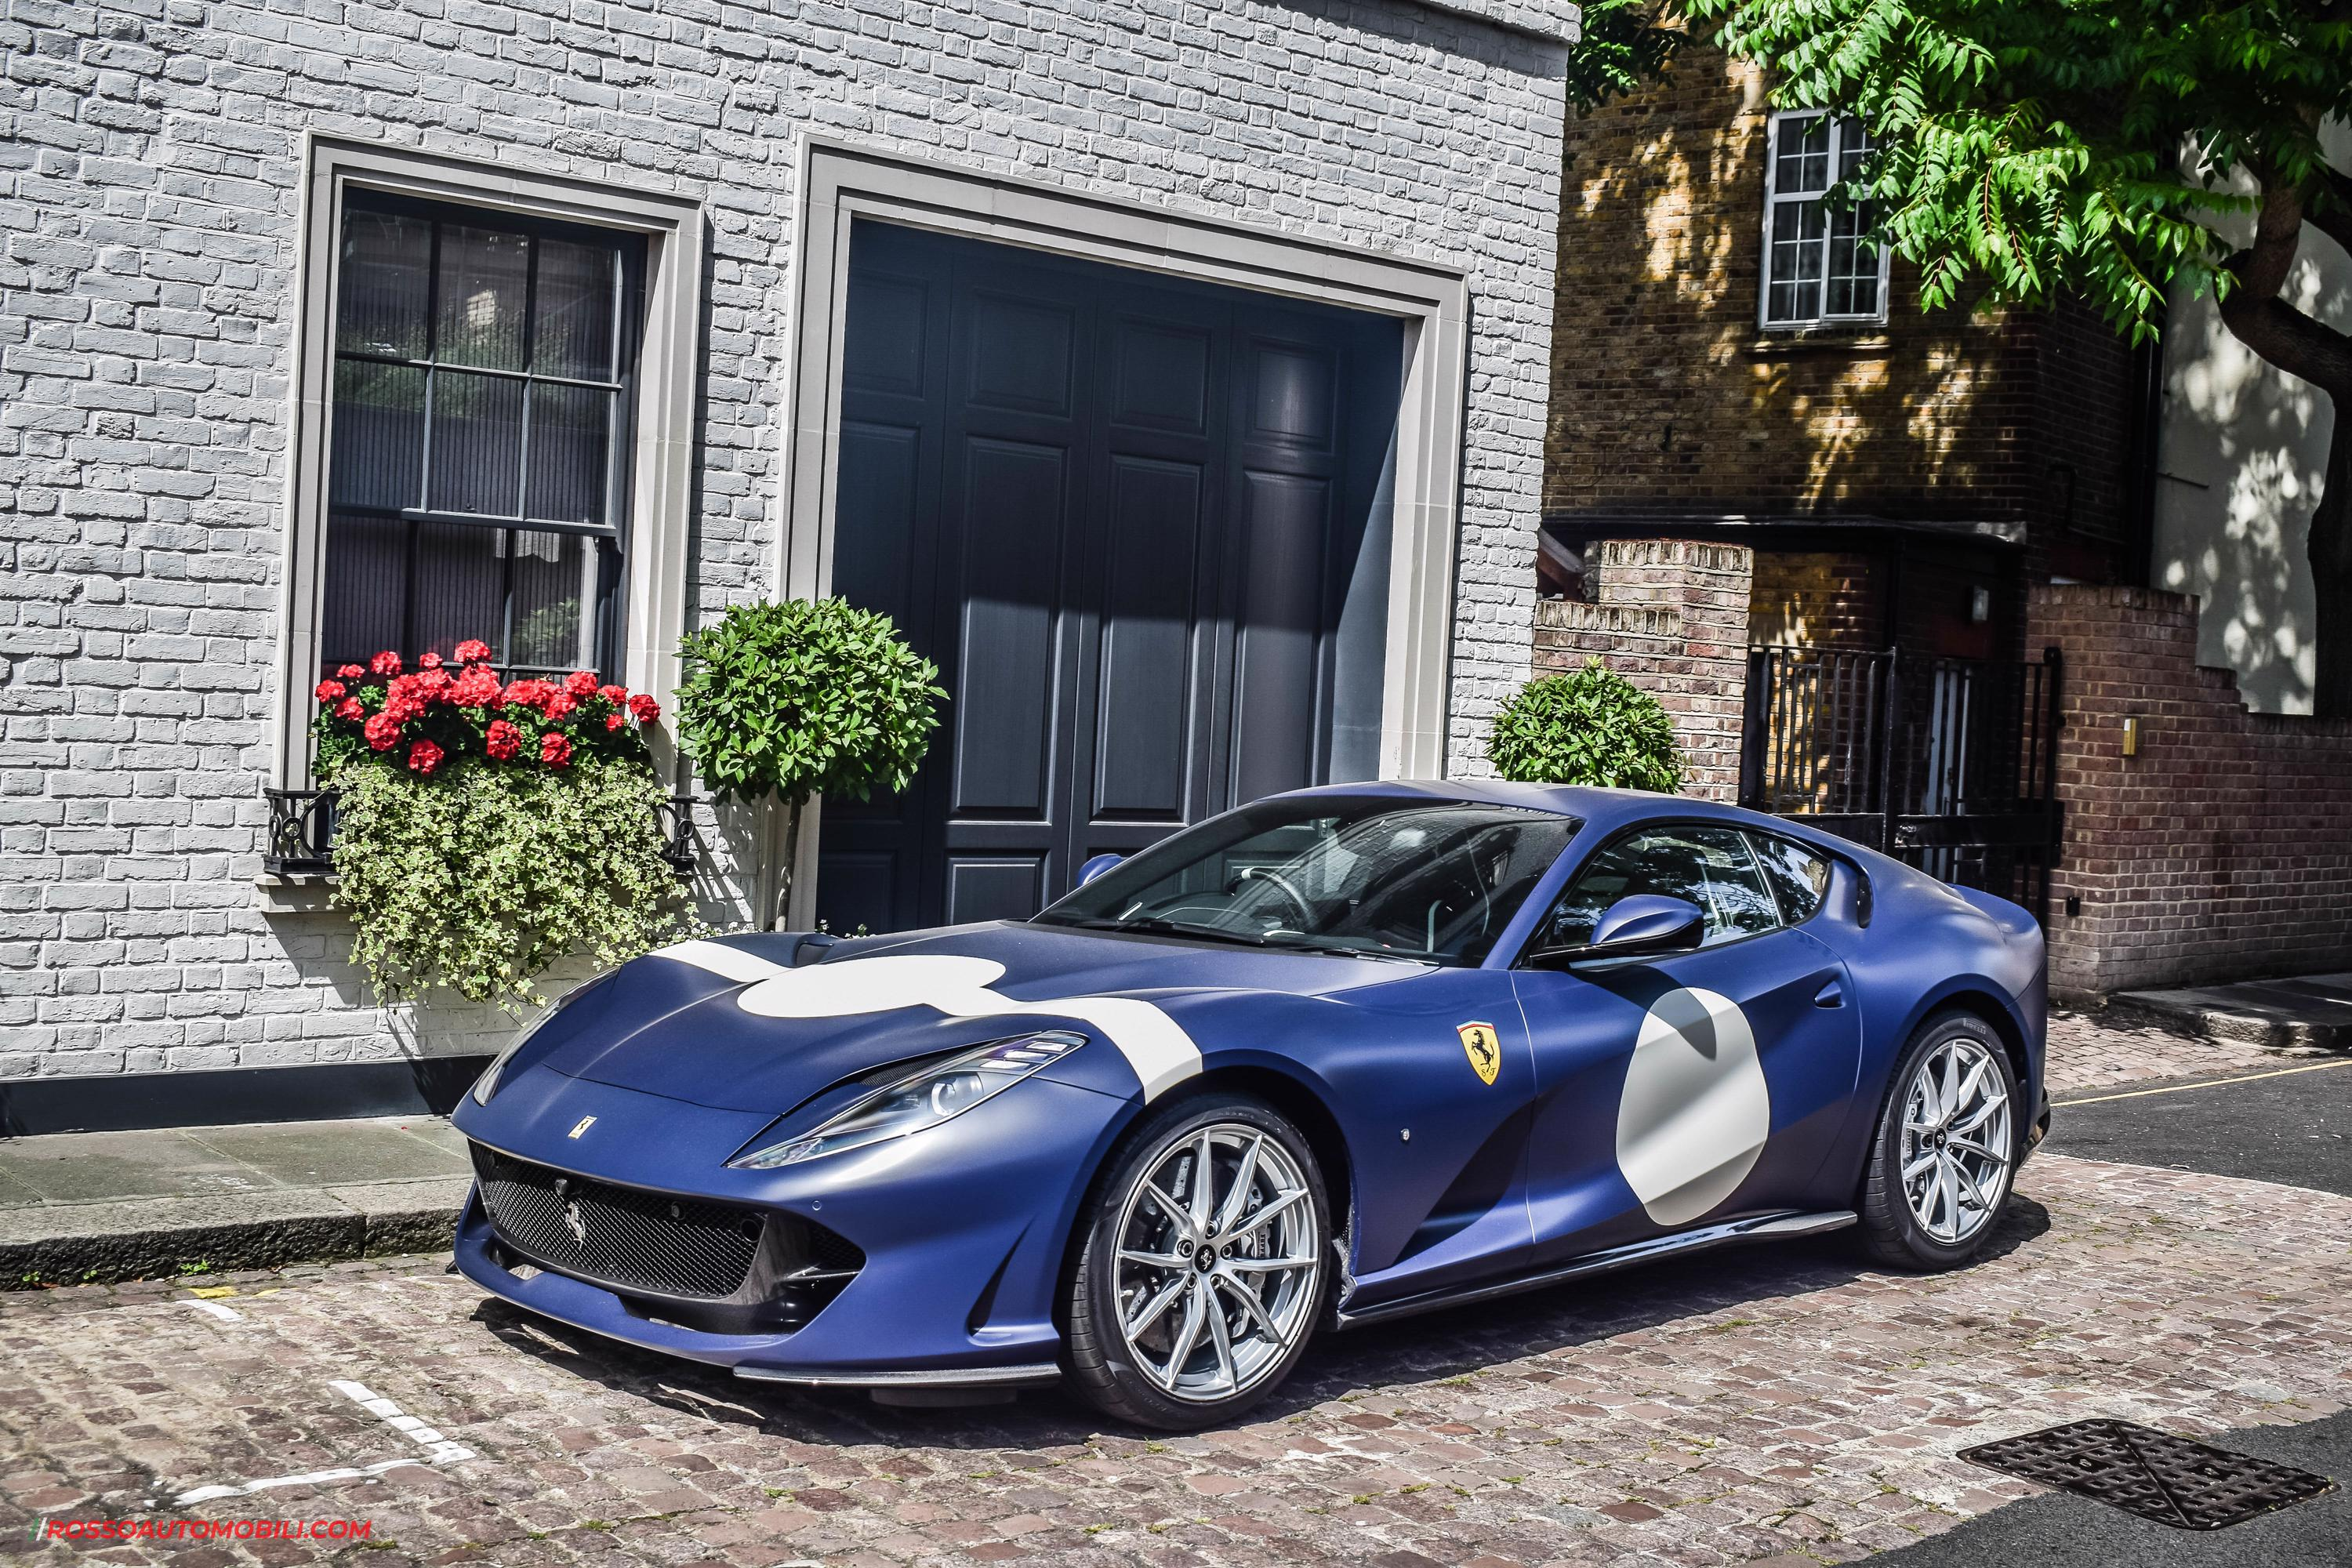 Stirling Moss Race Car Inspired This Ferrari 812 Superfast Rosso Rossoautomobili